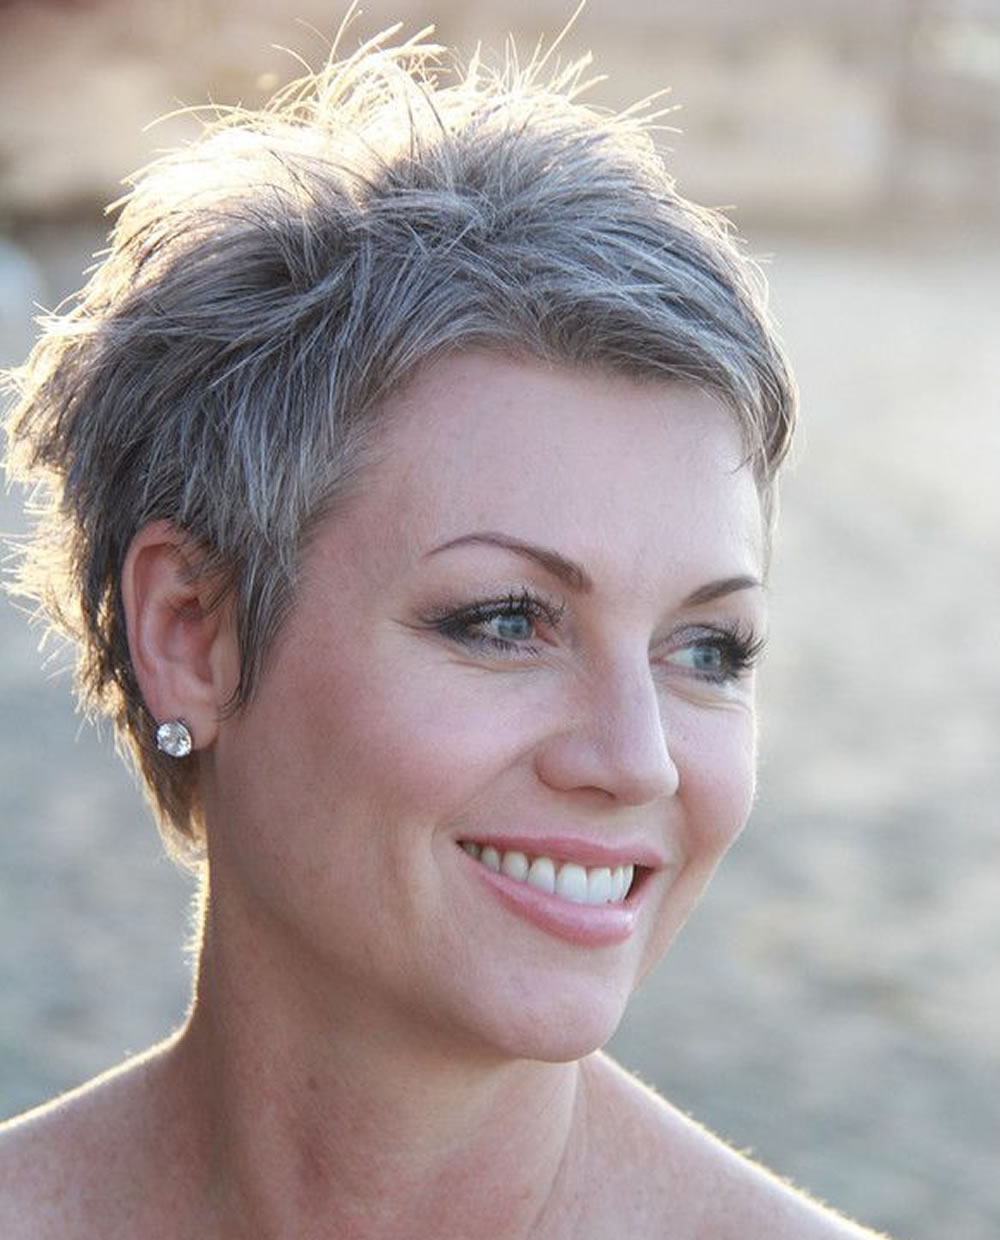 Grey Pixie Hair Cut & Gray Hair Colors For Short Hair – Hairstyles For Gray Pixie Hairstyles For Over (View 7 of 20)